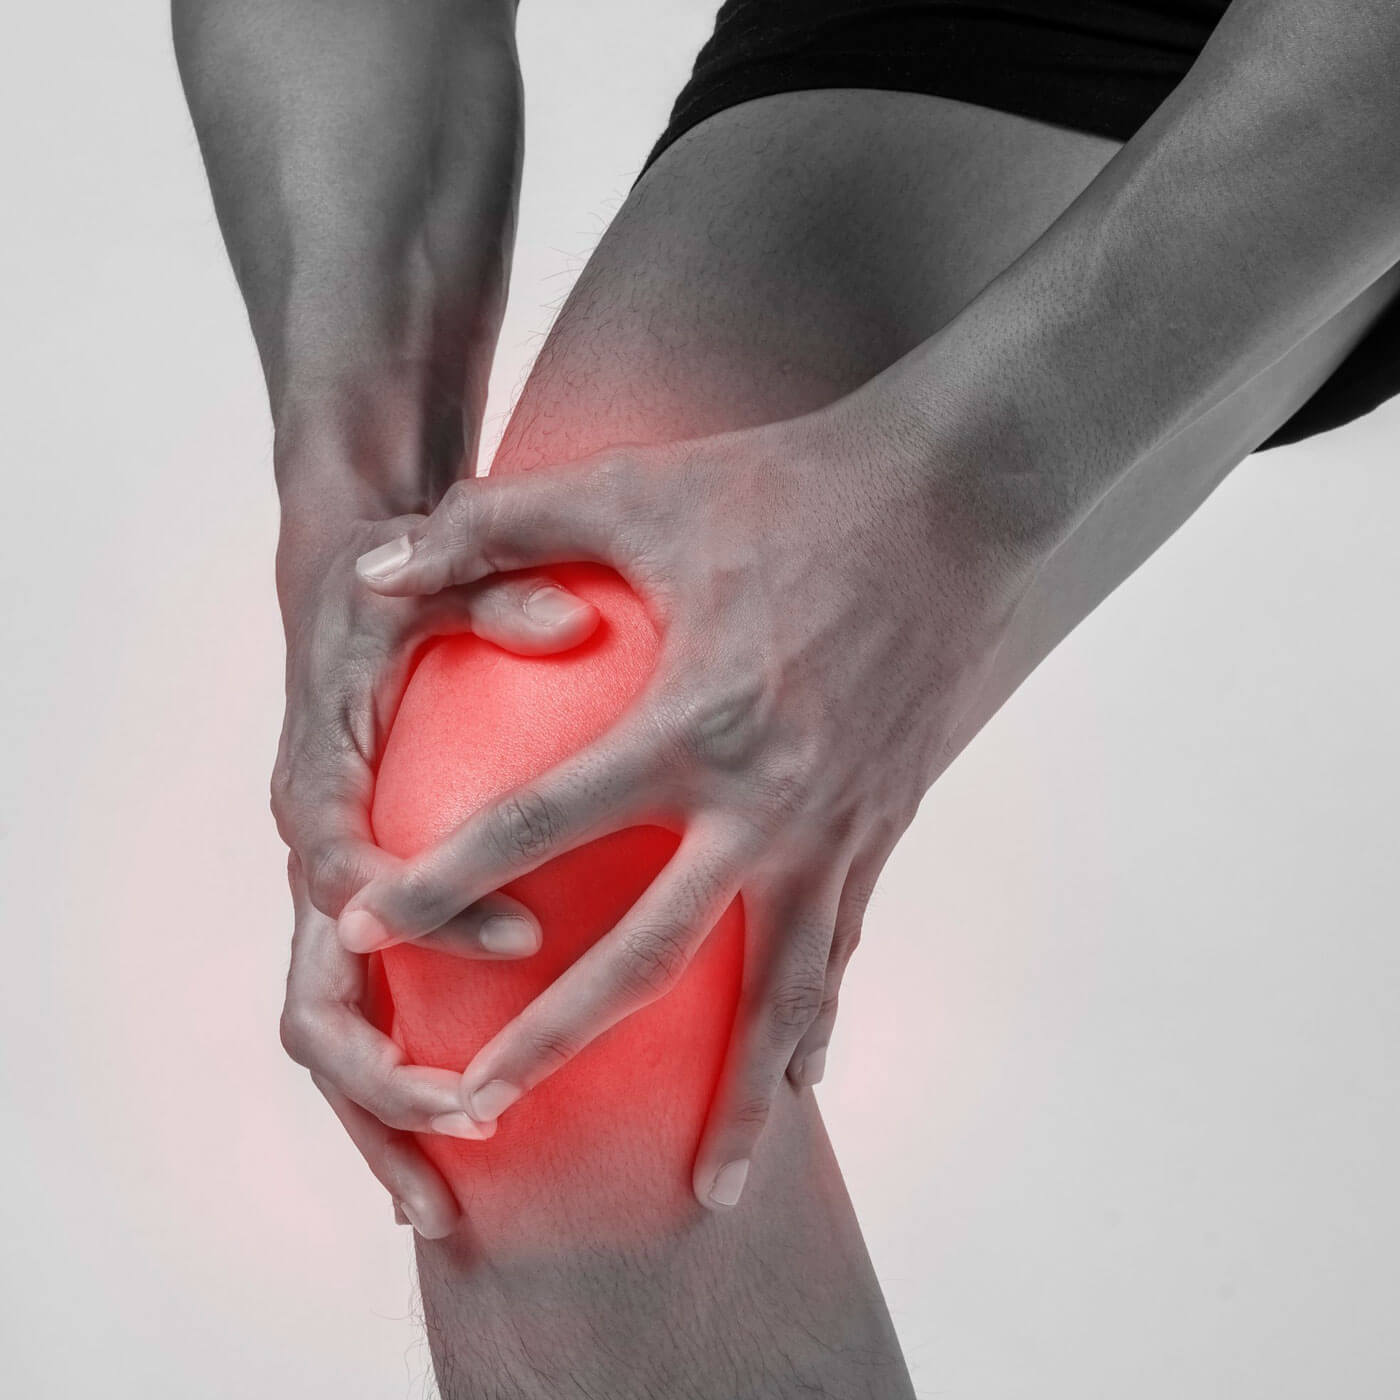 Essential Chiropractic and Healthcare Clinic - Chiropractic Services Knee Joint Pain and Discomfort Relief Treatment